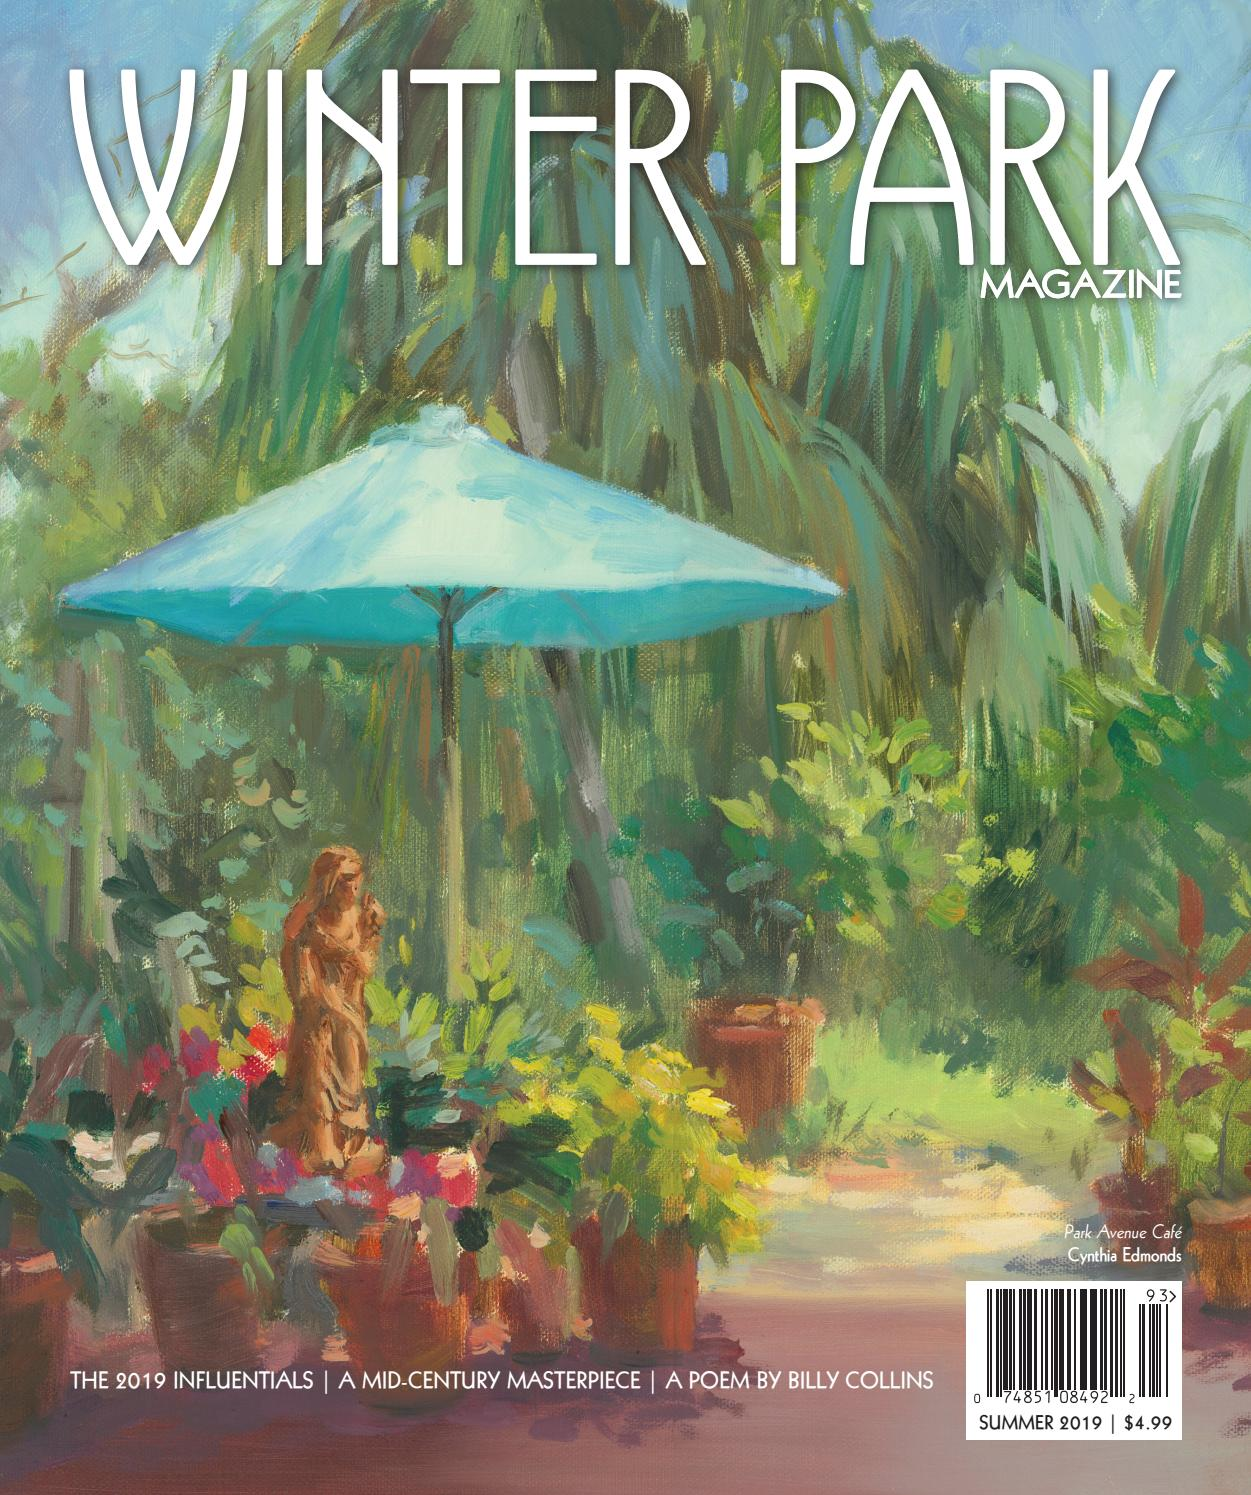 Winter Park Magazine Summer 2019 by Winter Park Publishing Company